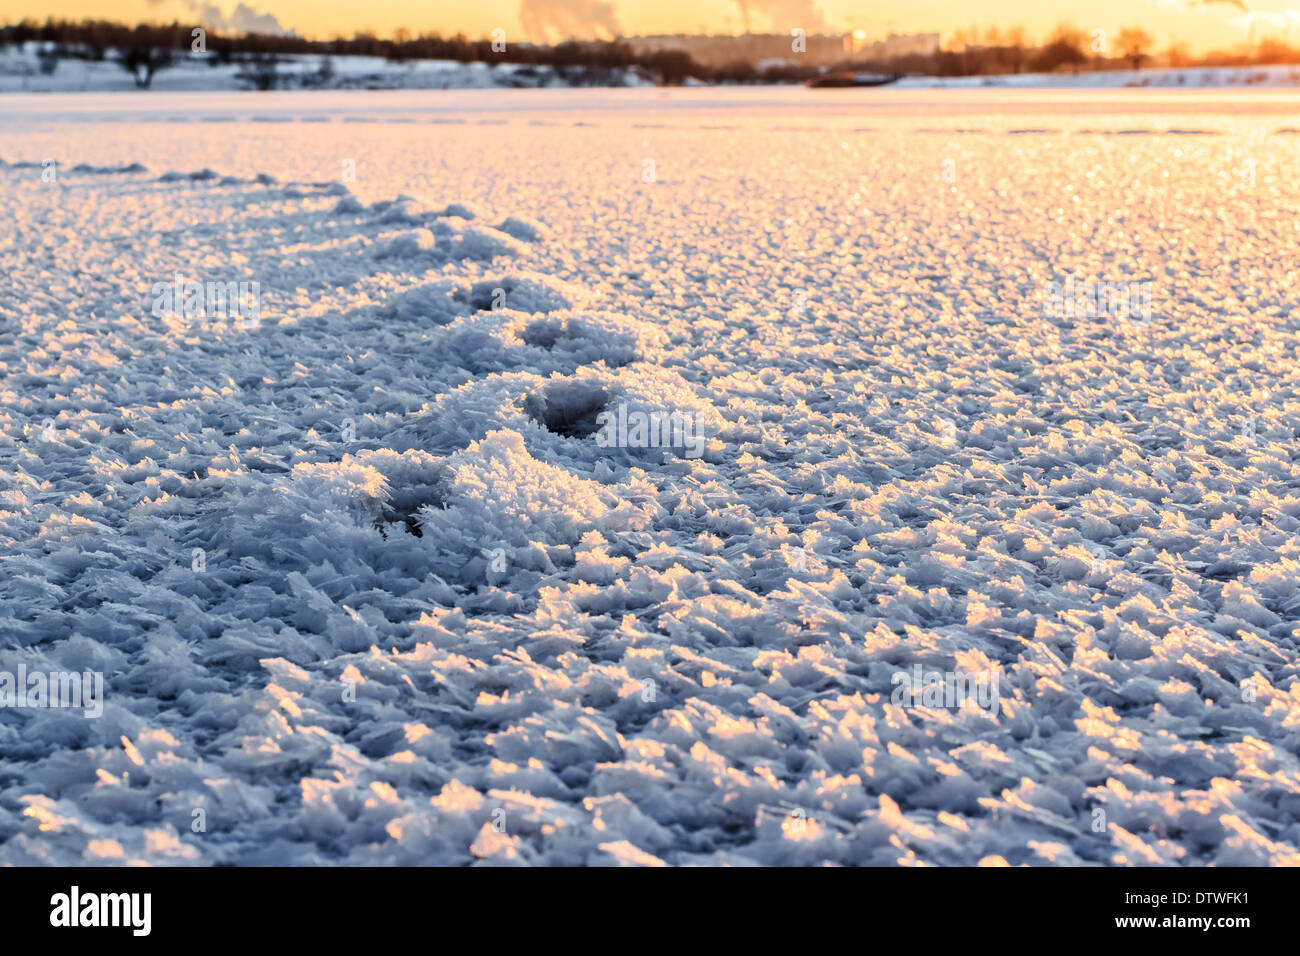 Large crystals of snow at sunset on the ice surface - Stock Image